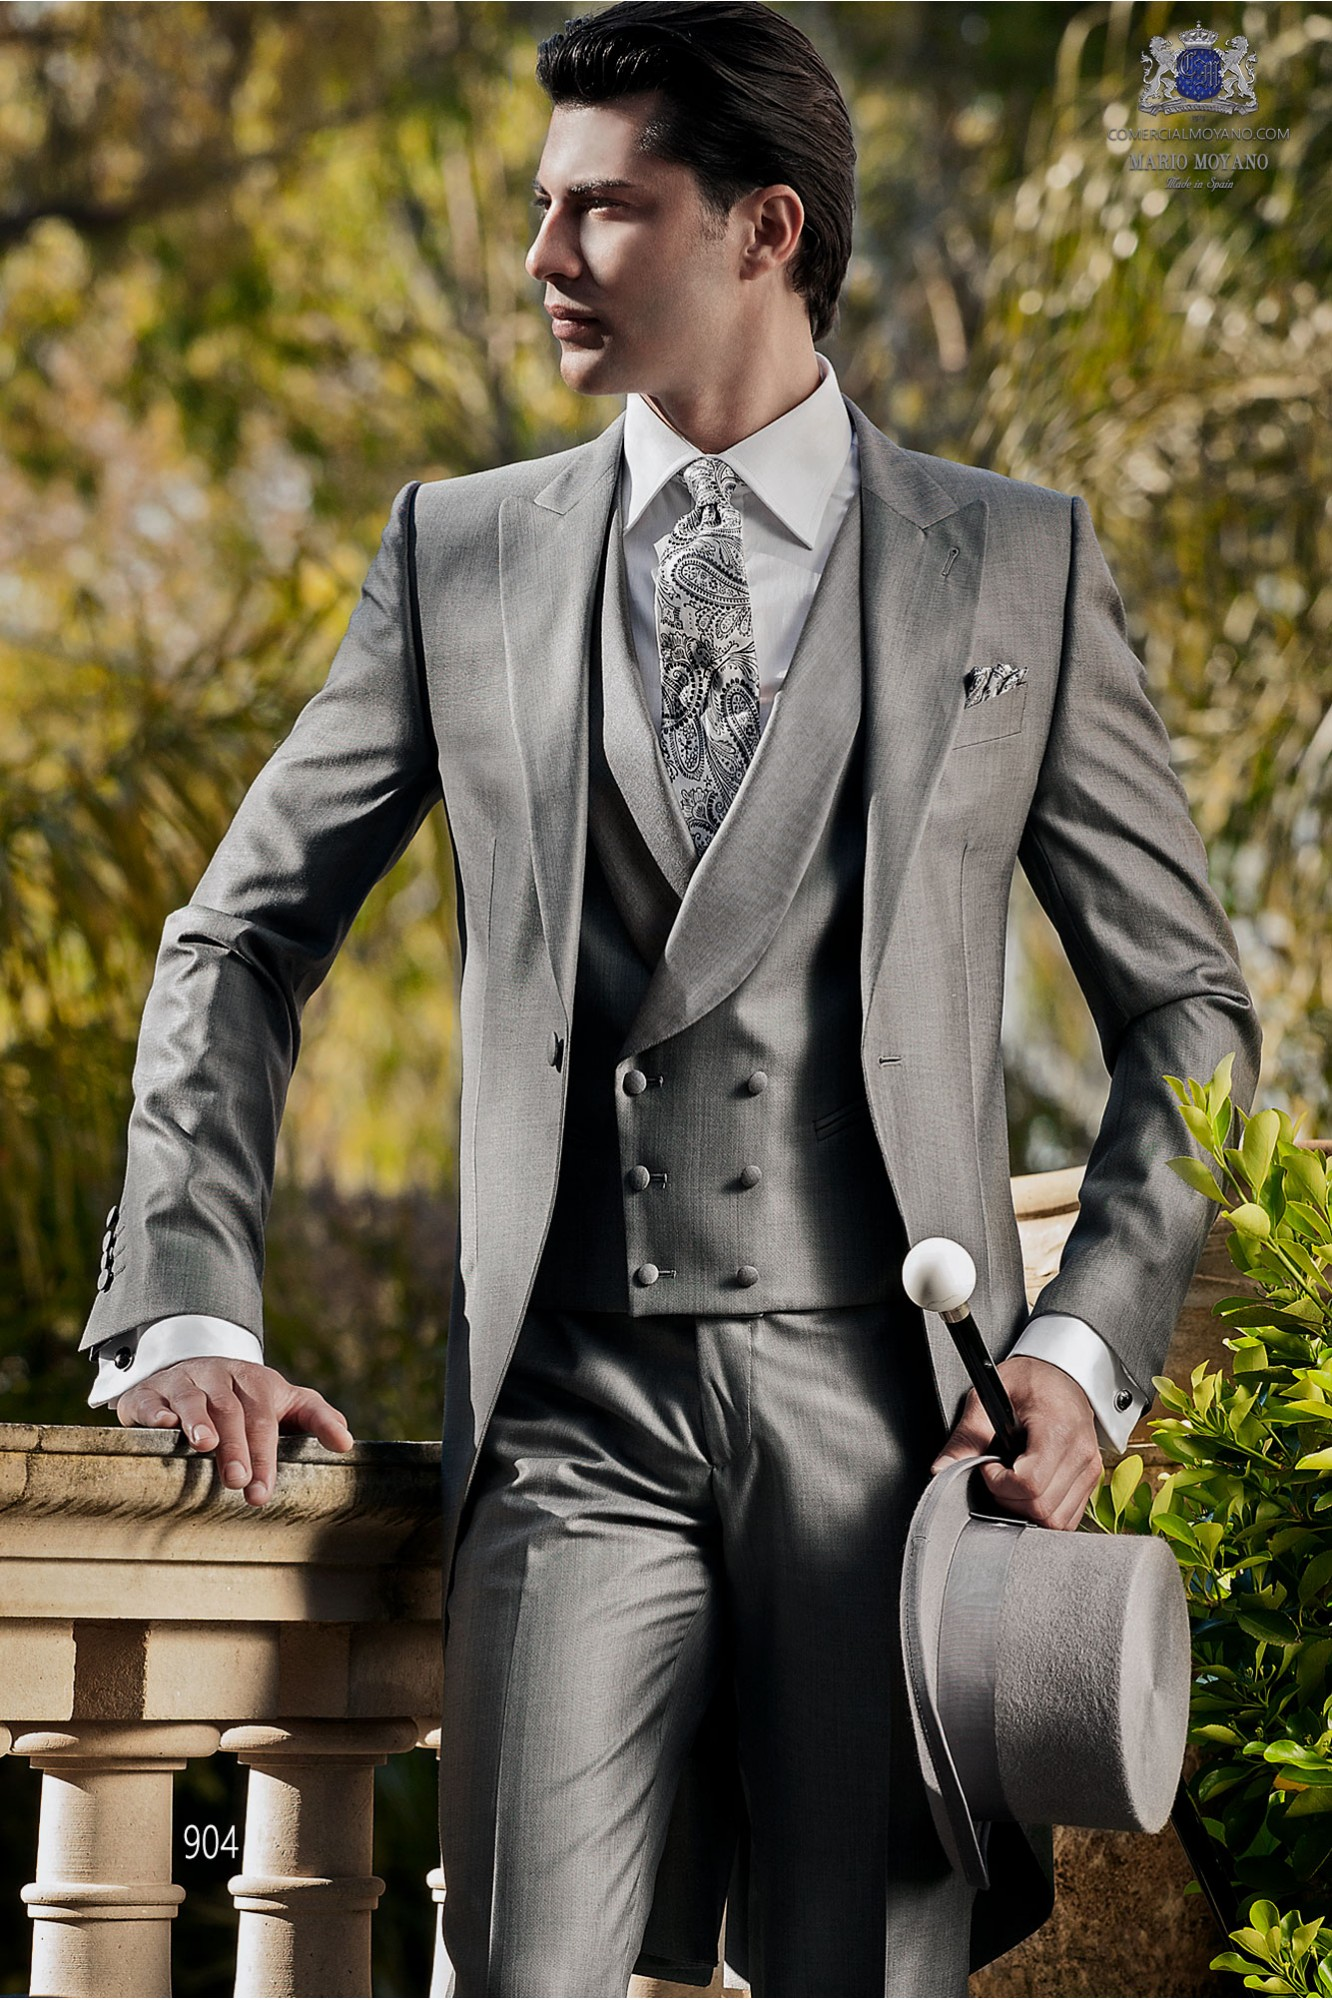 Italian bespoke gray wedding morning suit in wool silk fabric, style 904 Ottavio Nuccio Gala, Gentleman collection.